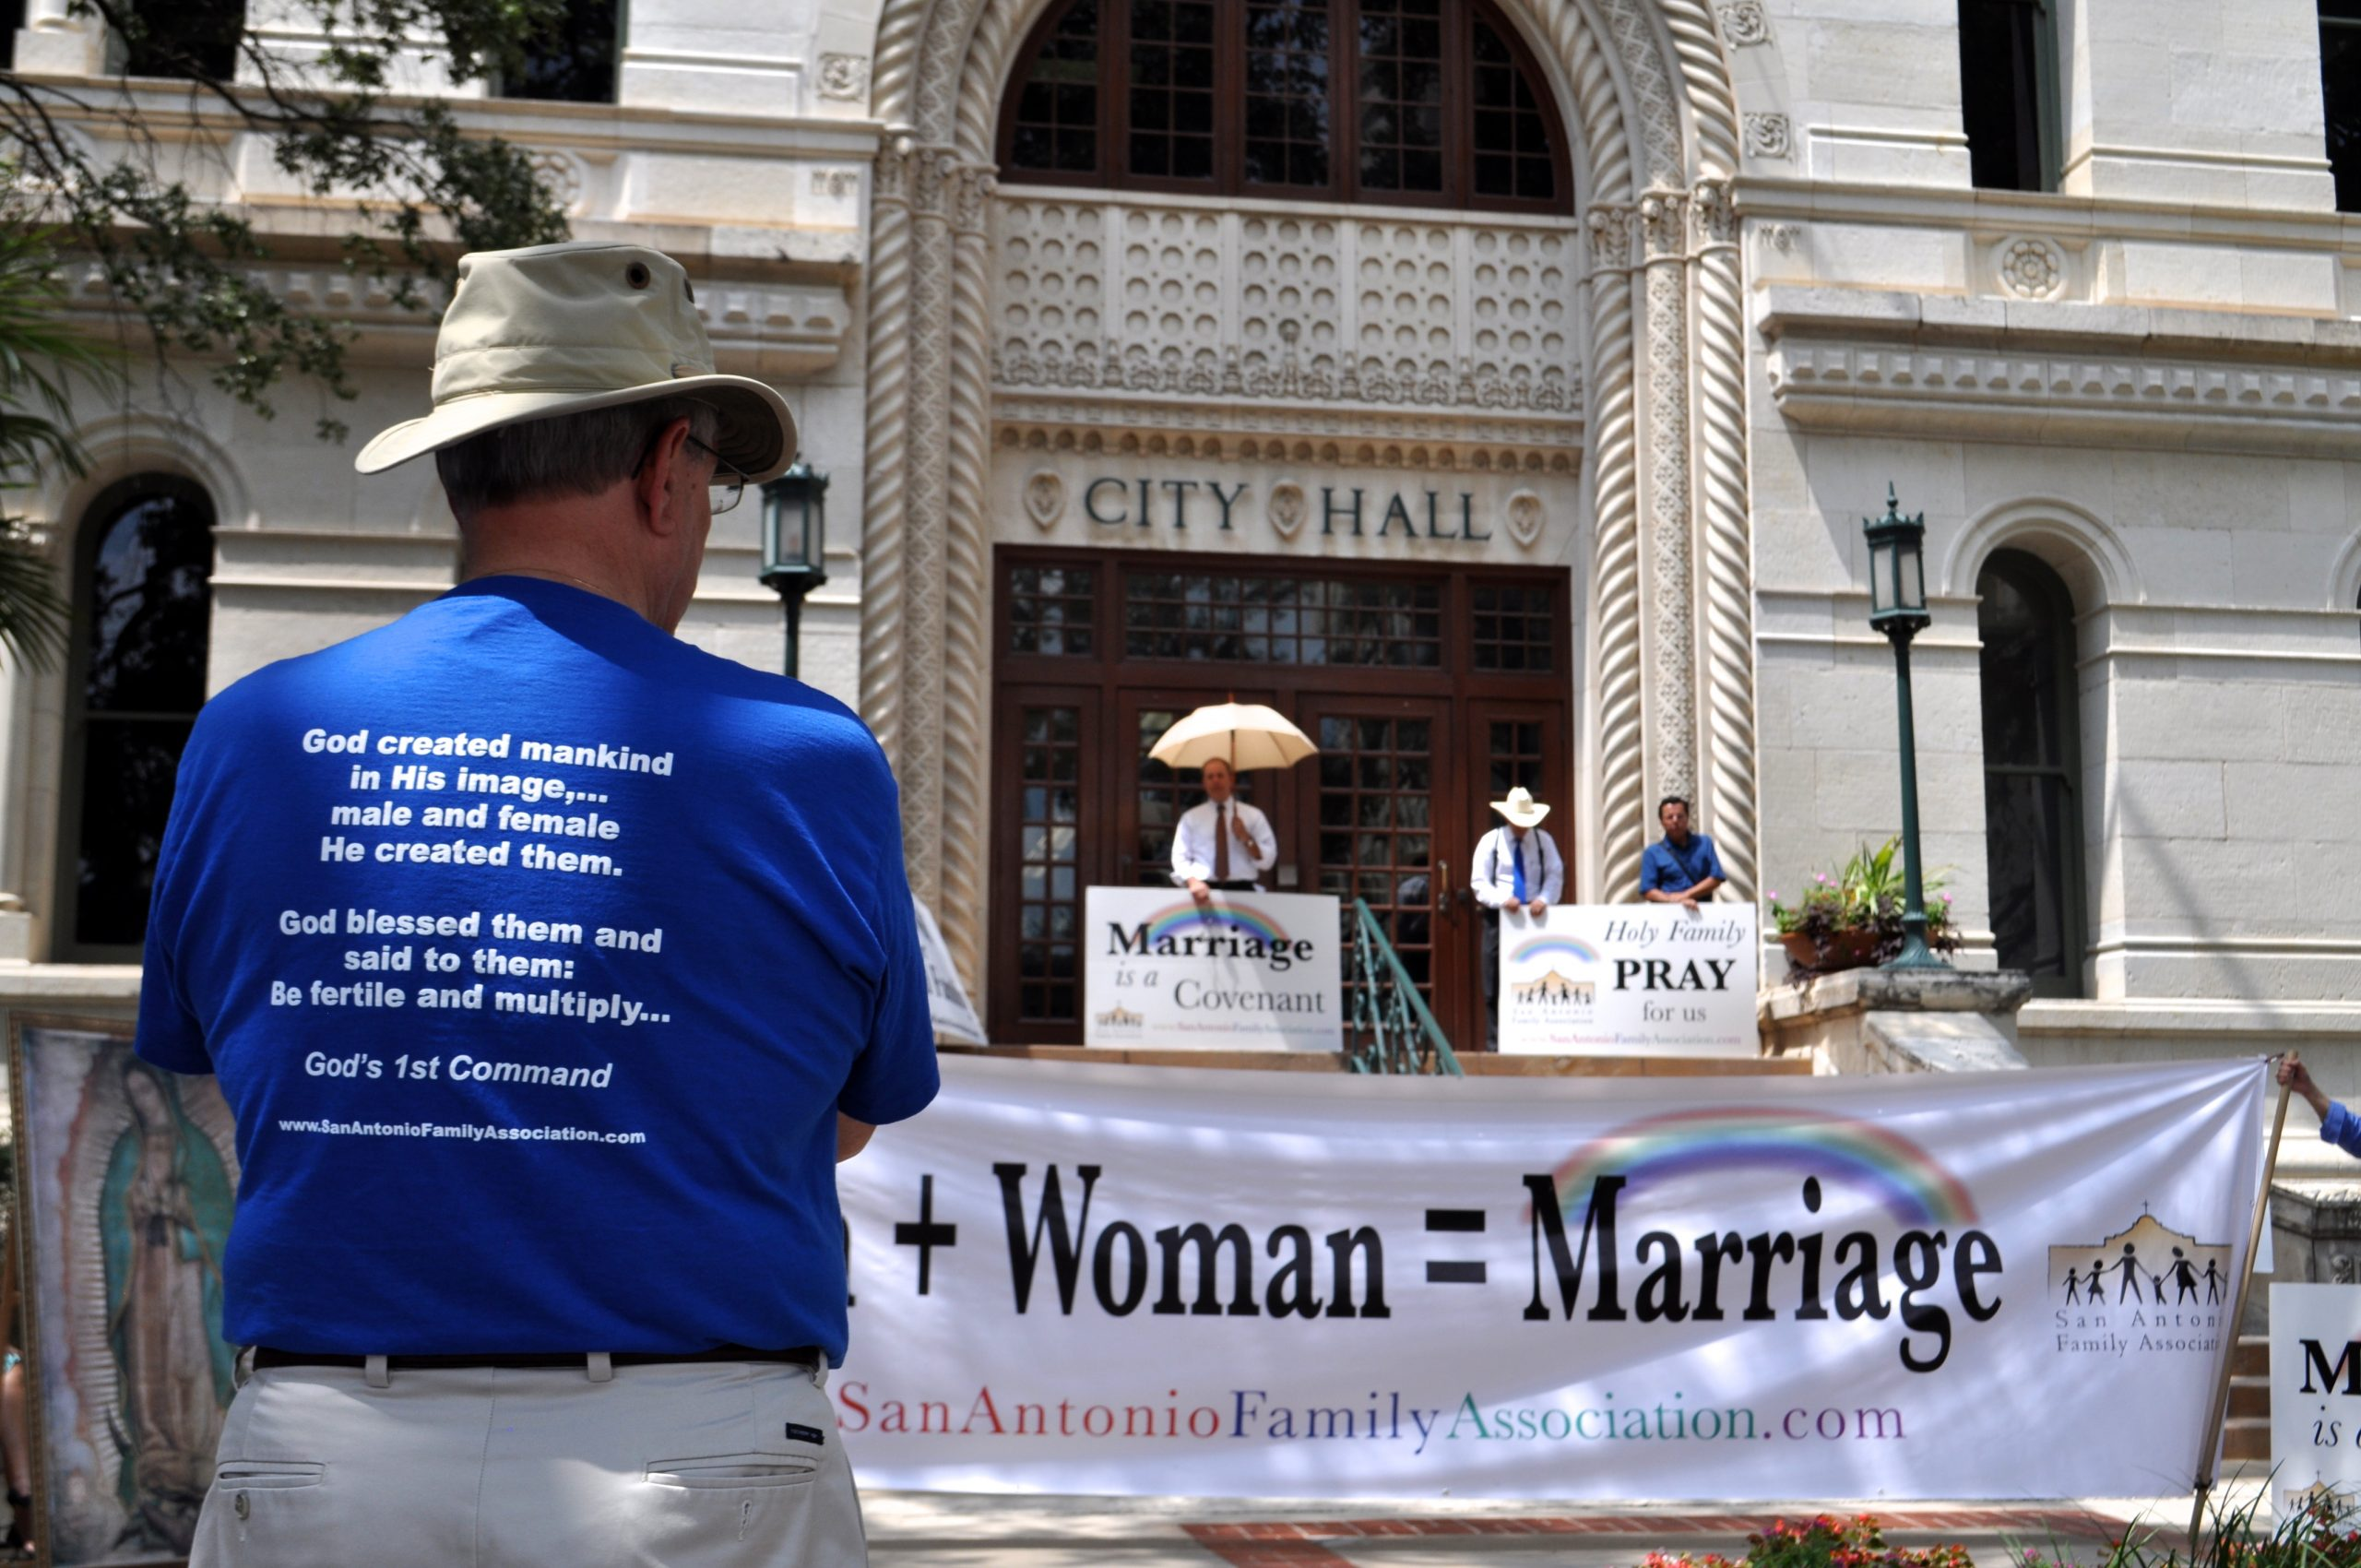 Citizens hold prayer sessions on the steps of City Hall in protest of the proposed non-discrimination ordinance. Photo by Iris Dimmick.